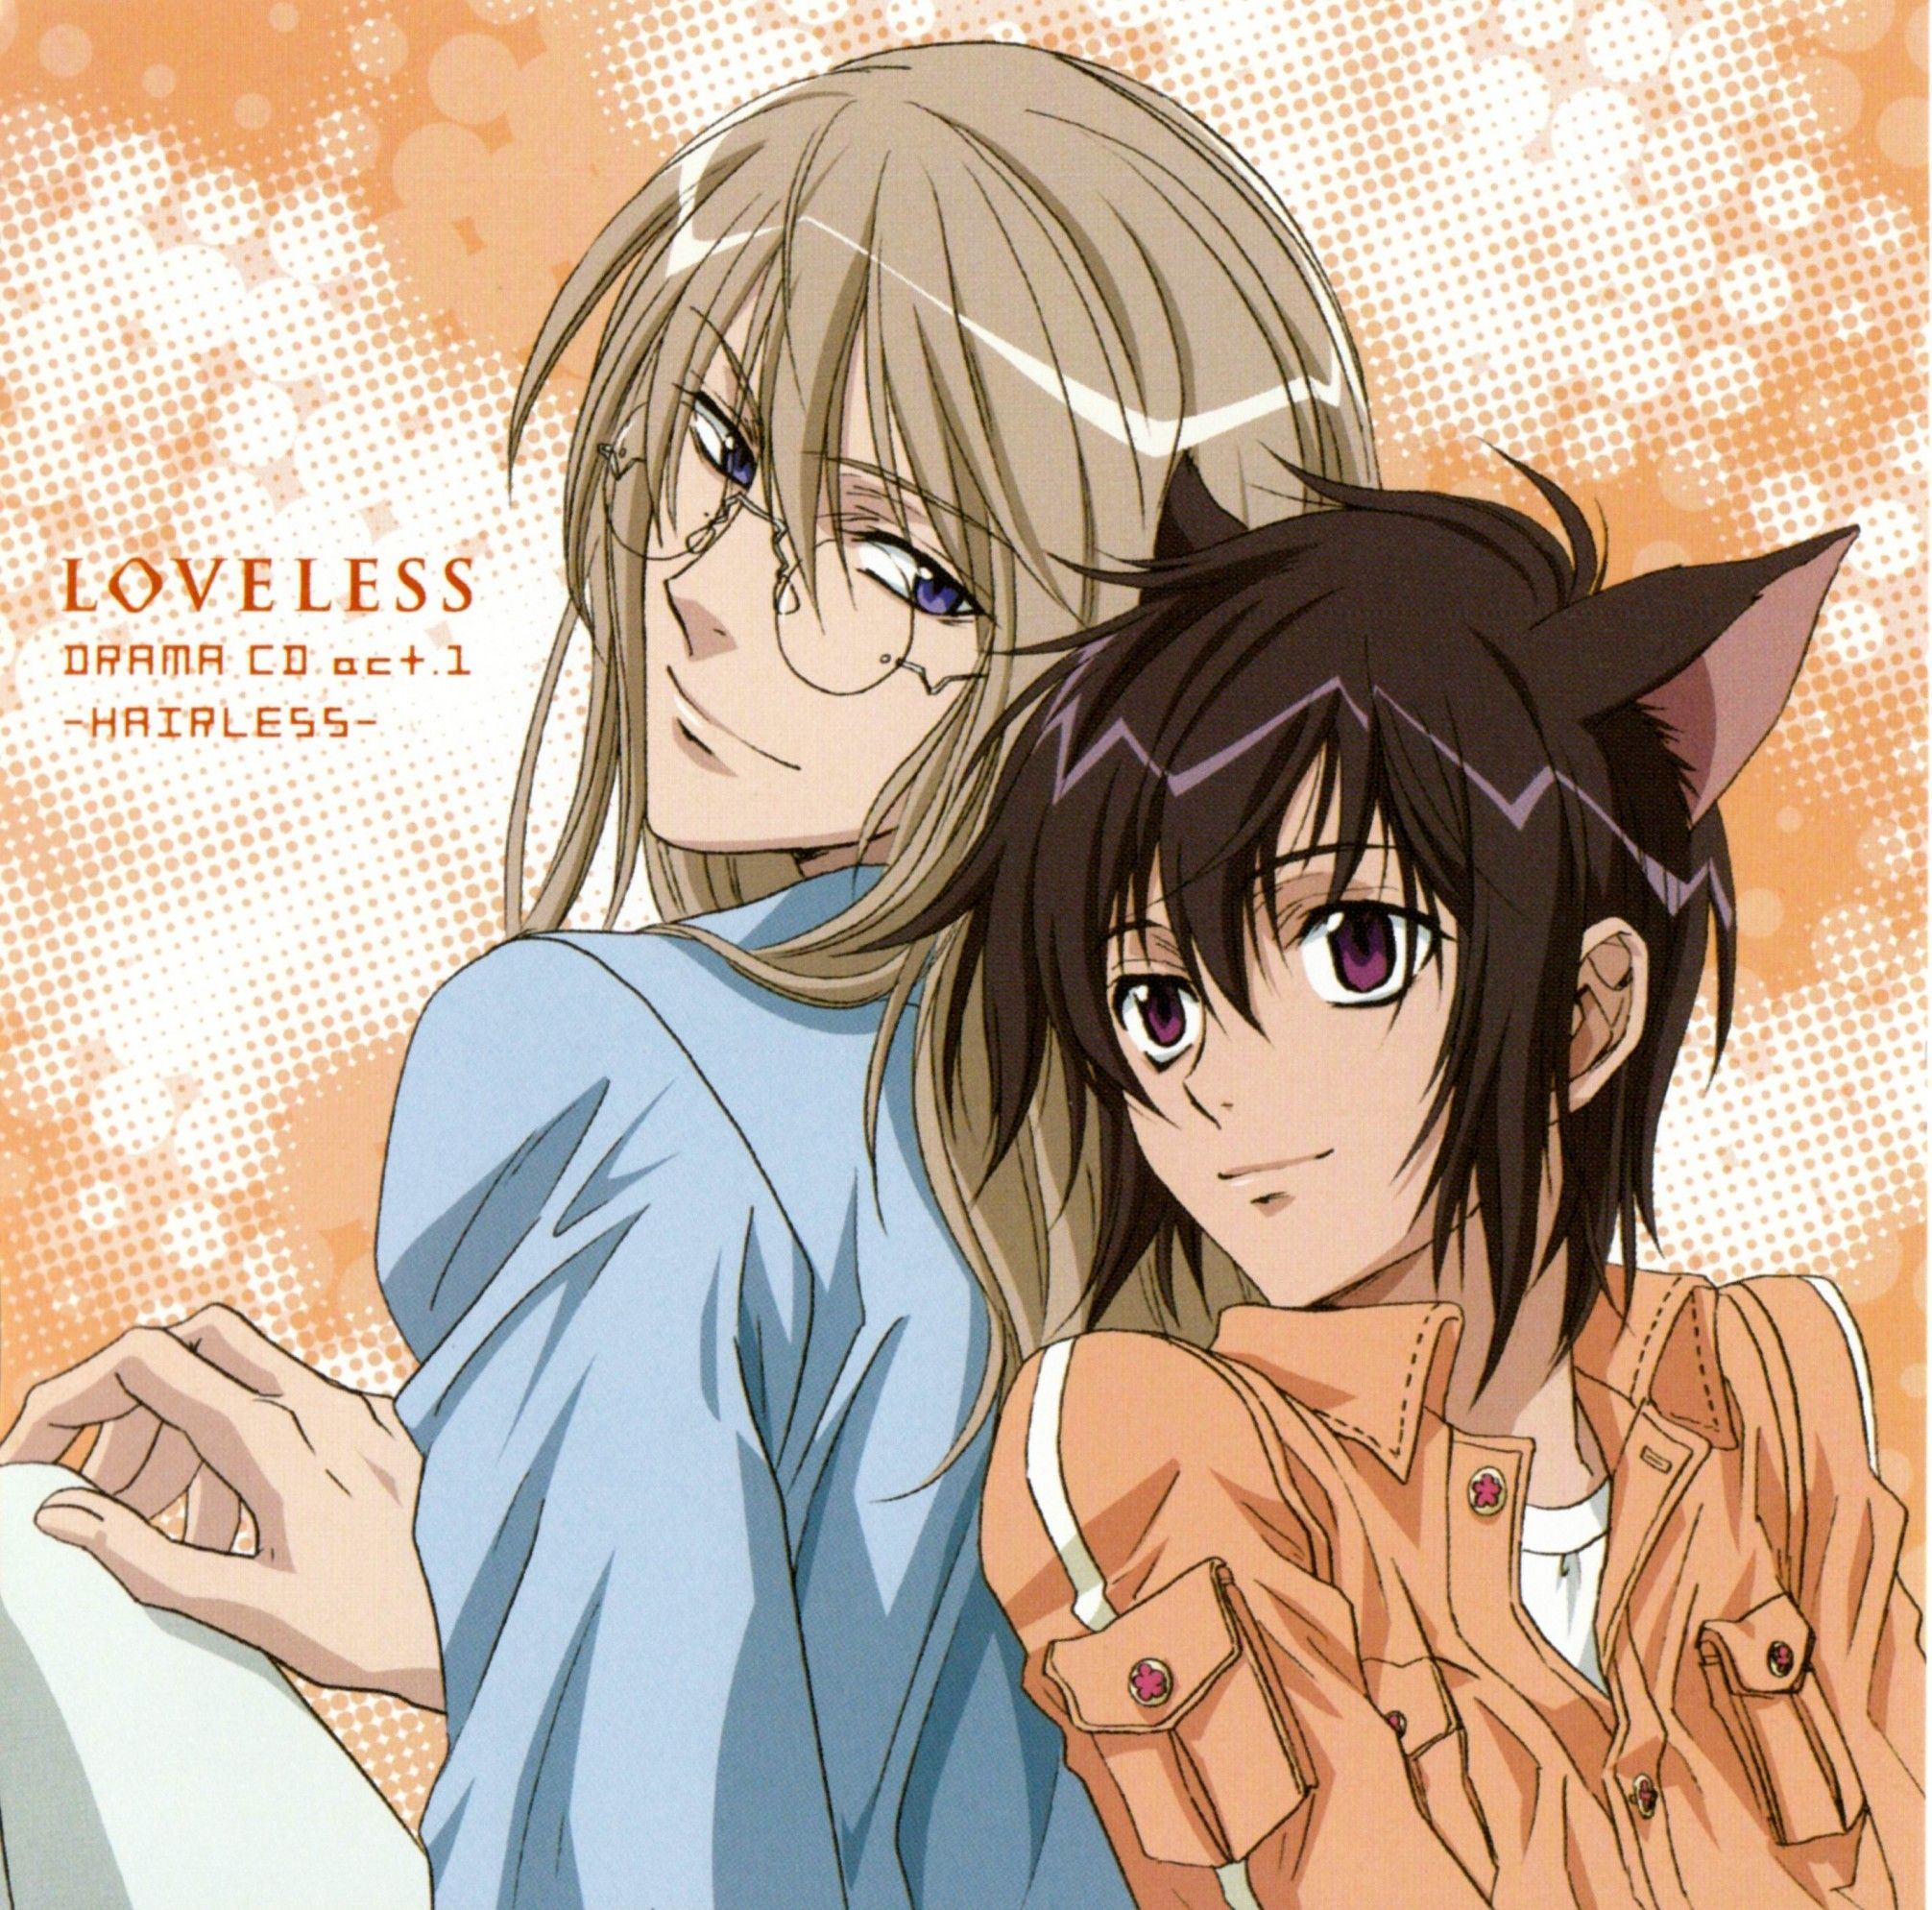 Loveless soubi and ritsuka loveless anime me me me anime anime love